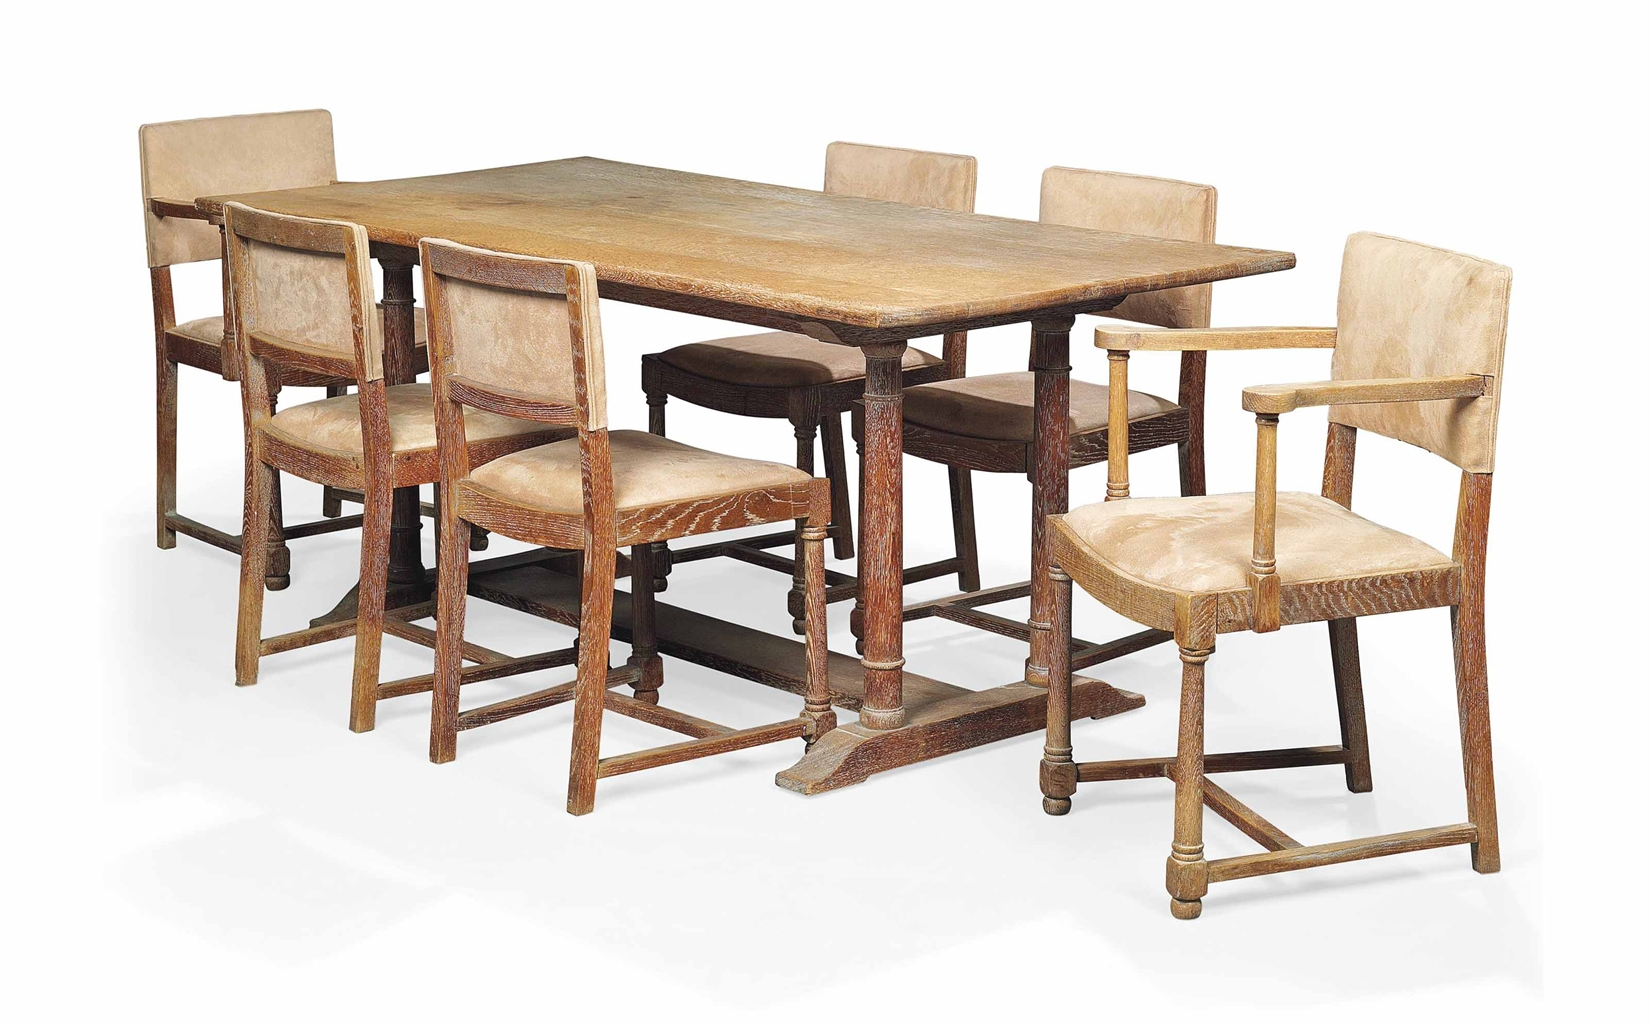 A heal 39 s limed oak dining table and chairs circa 1930s interiors auction christie 39 s - Limed oak dining tables ...